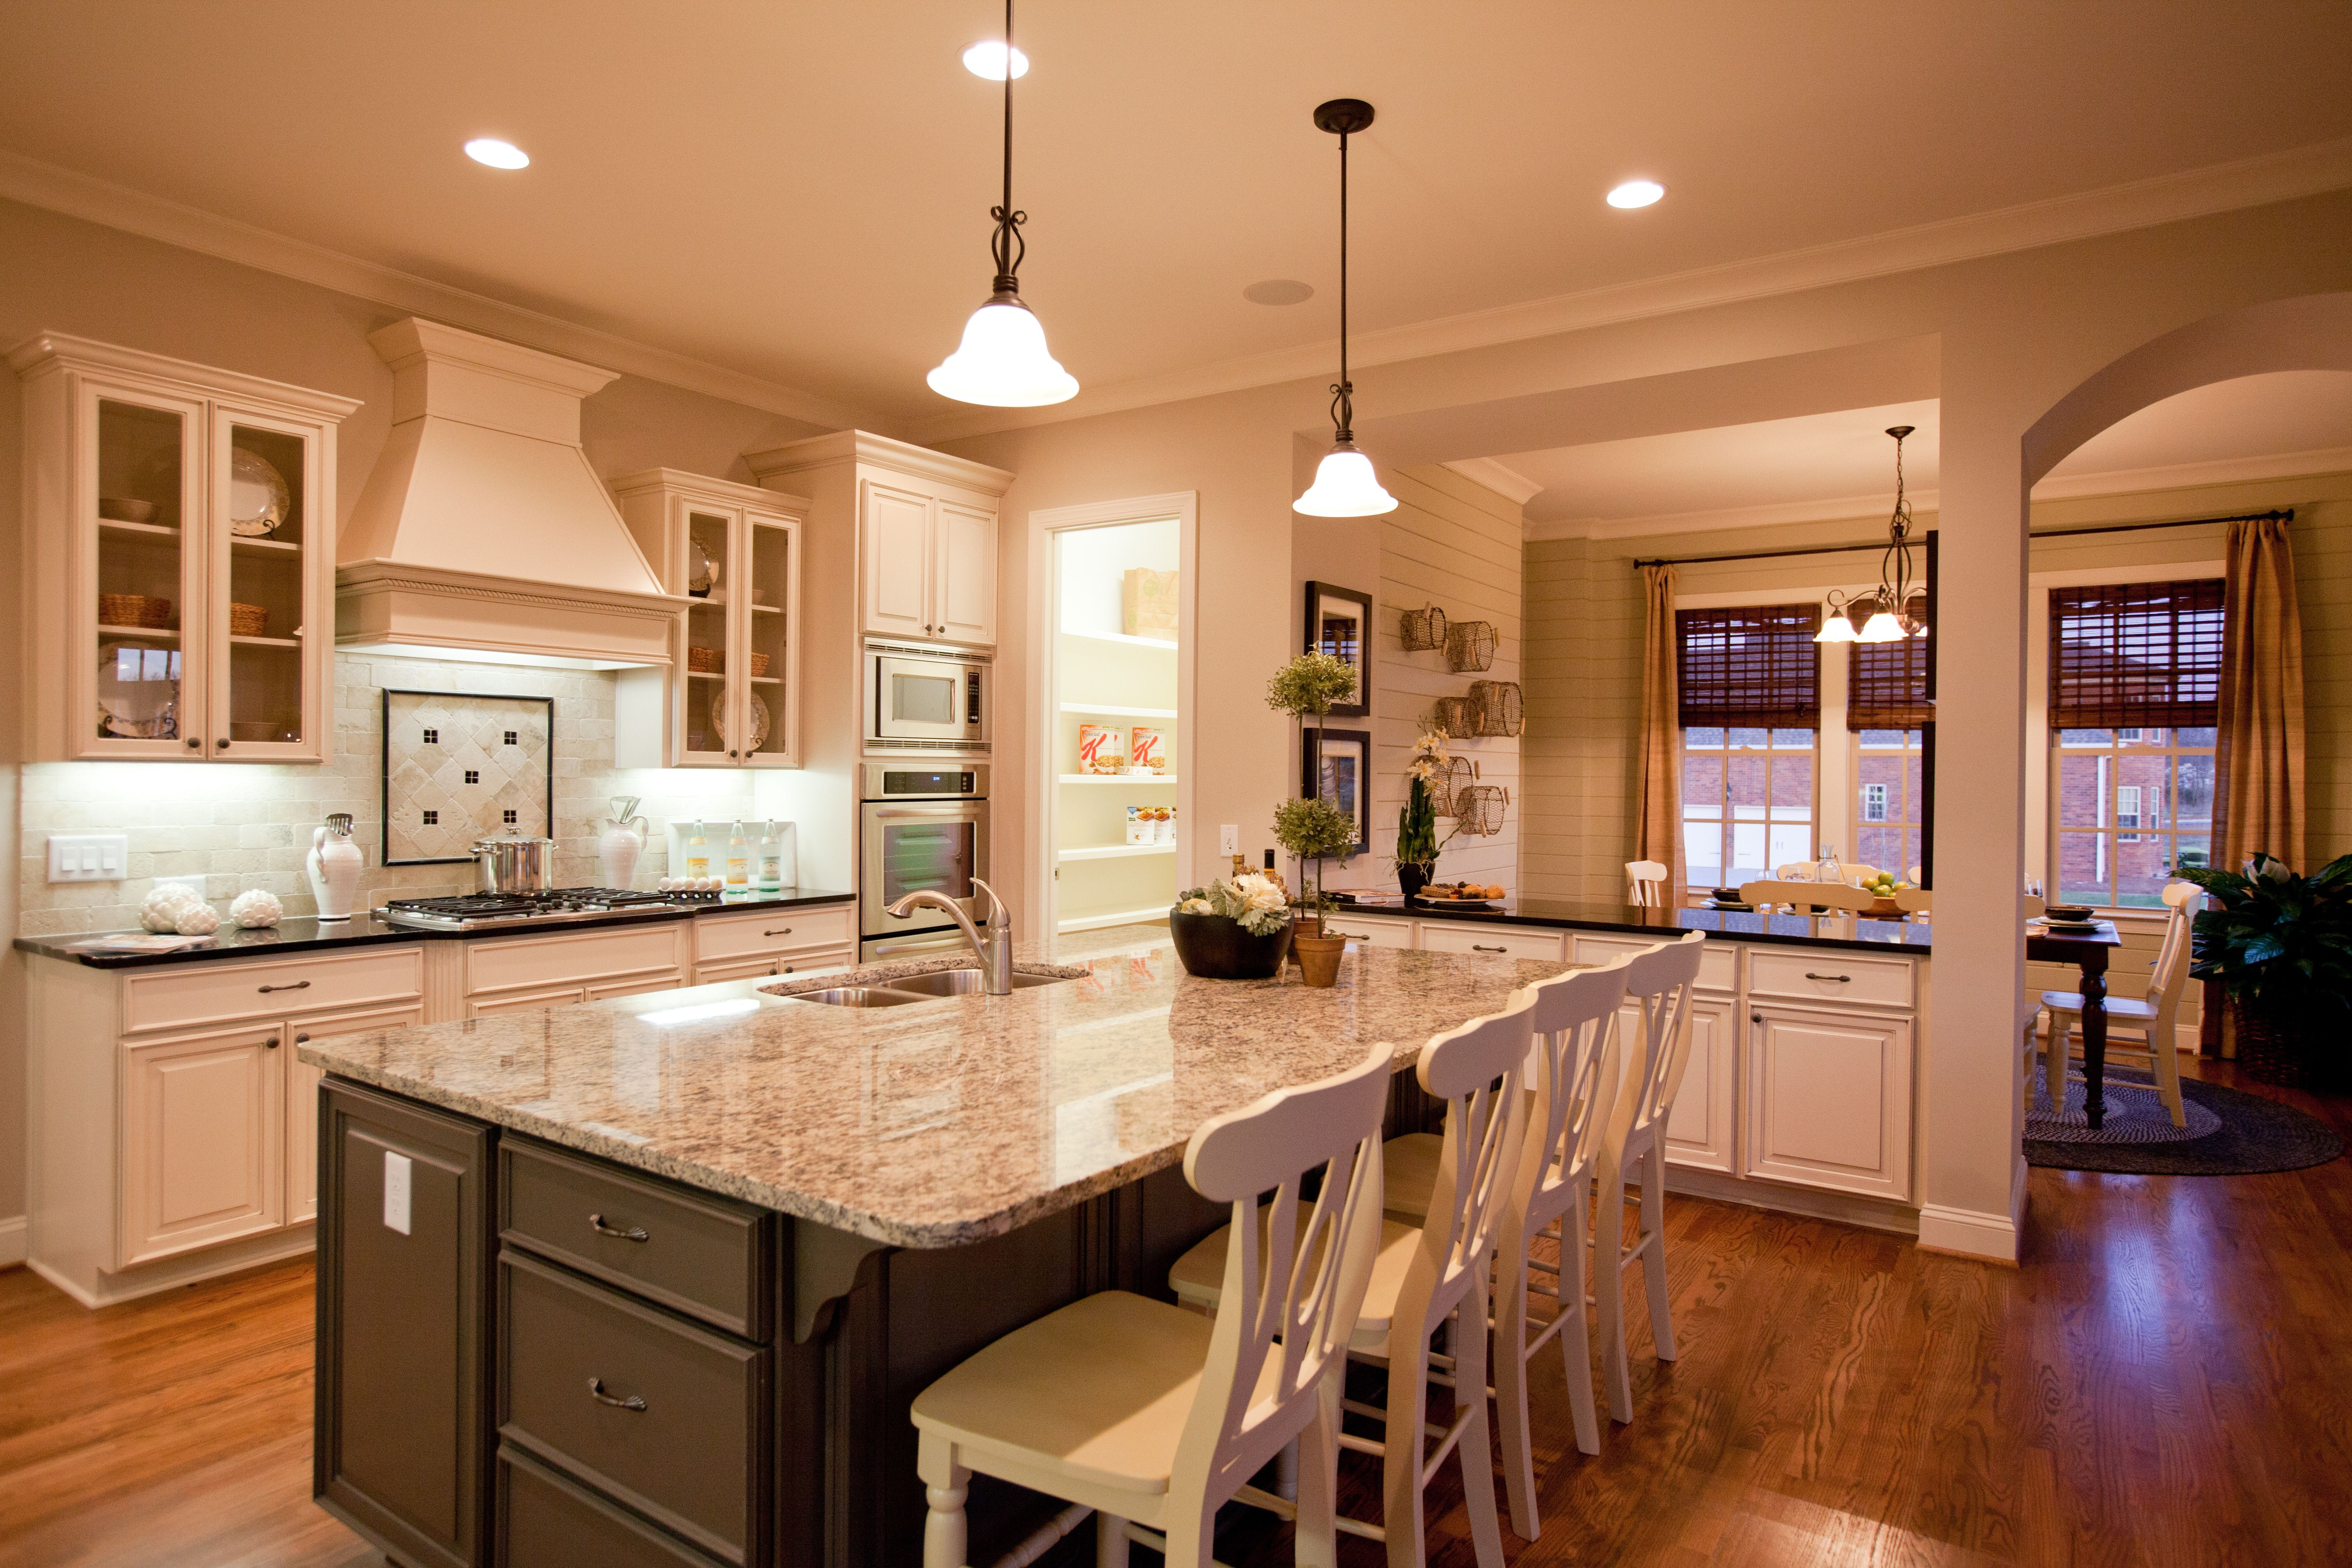 Model Home Kitchen Pictures - Google Search